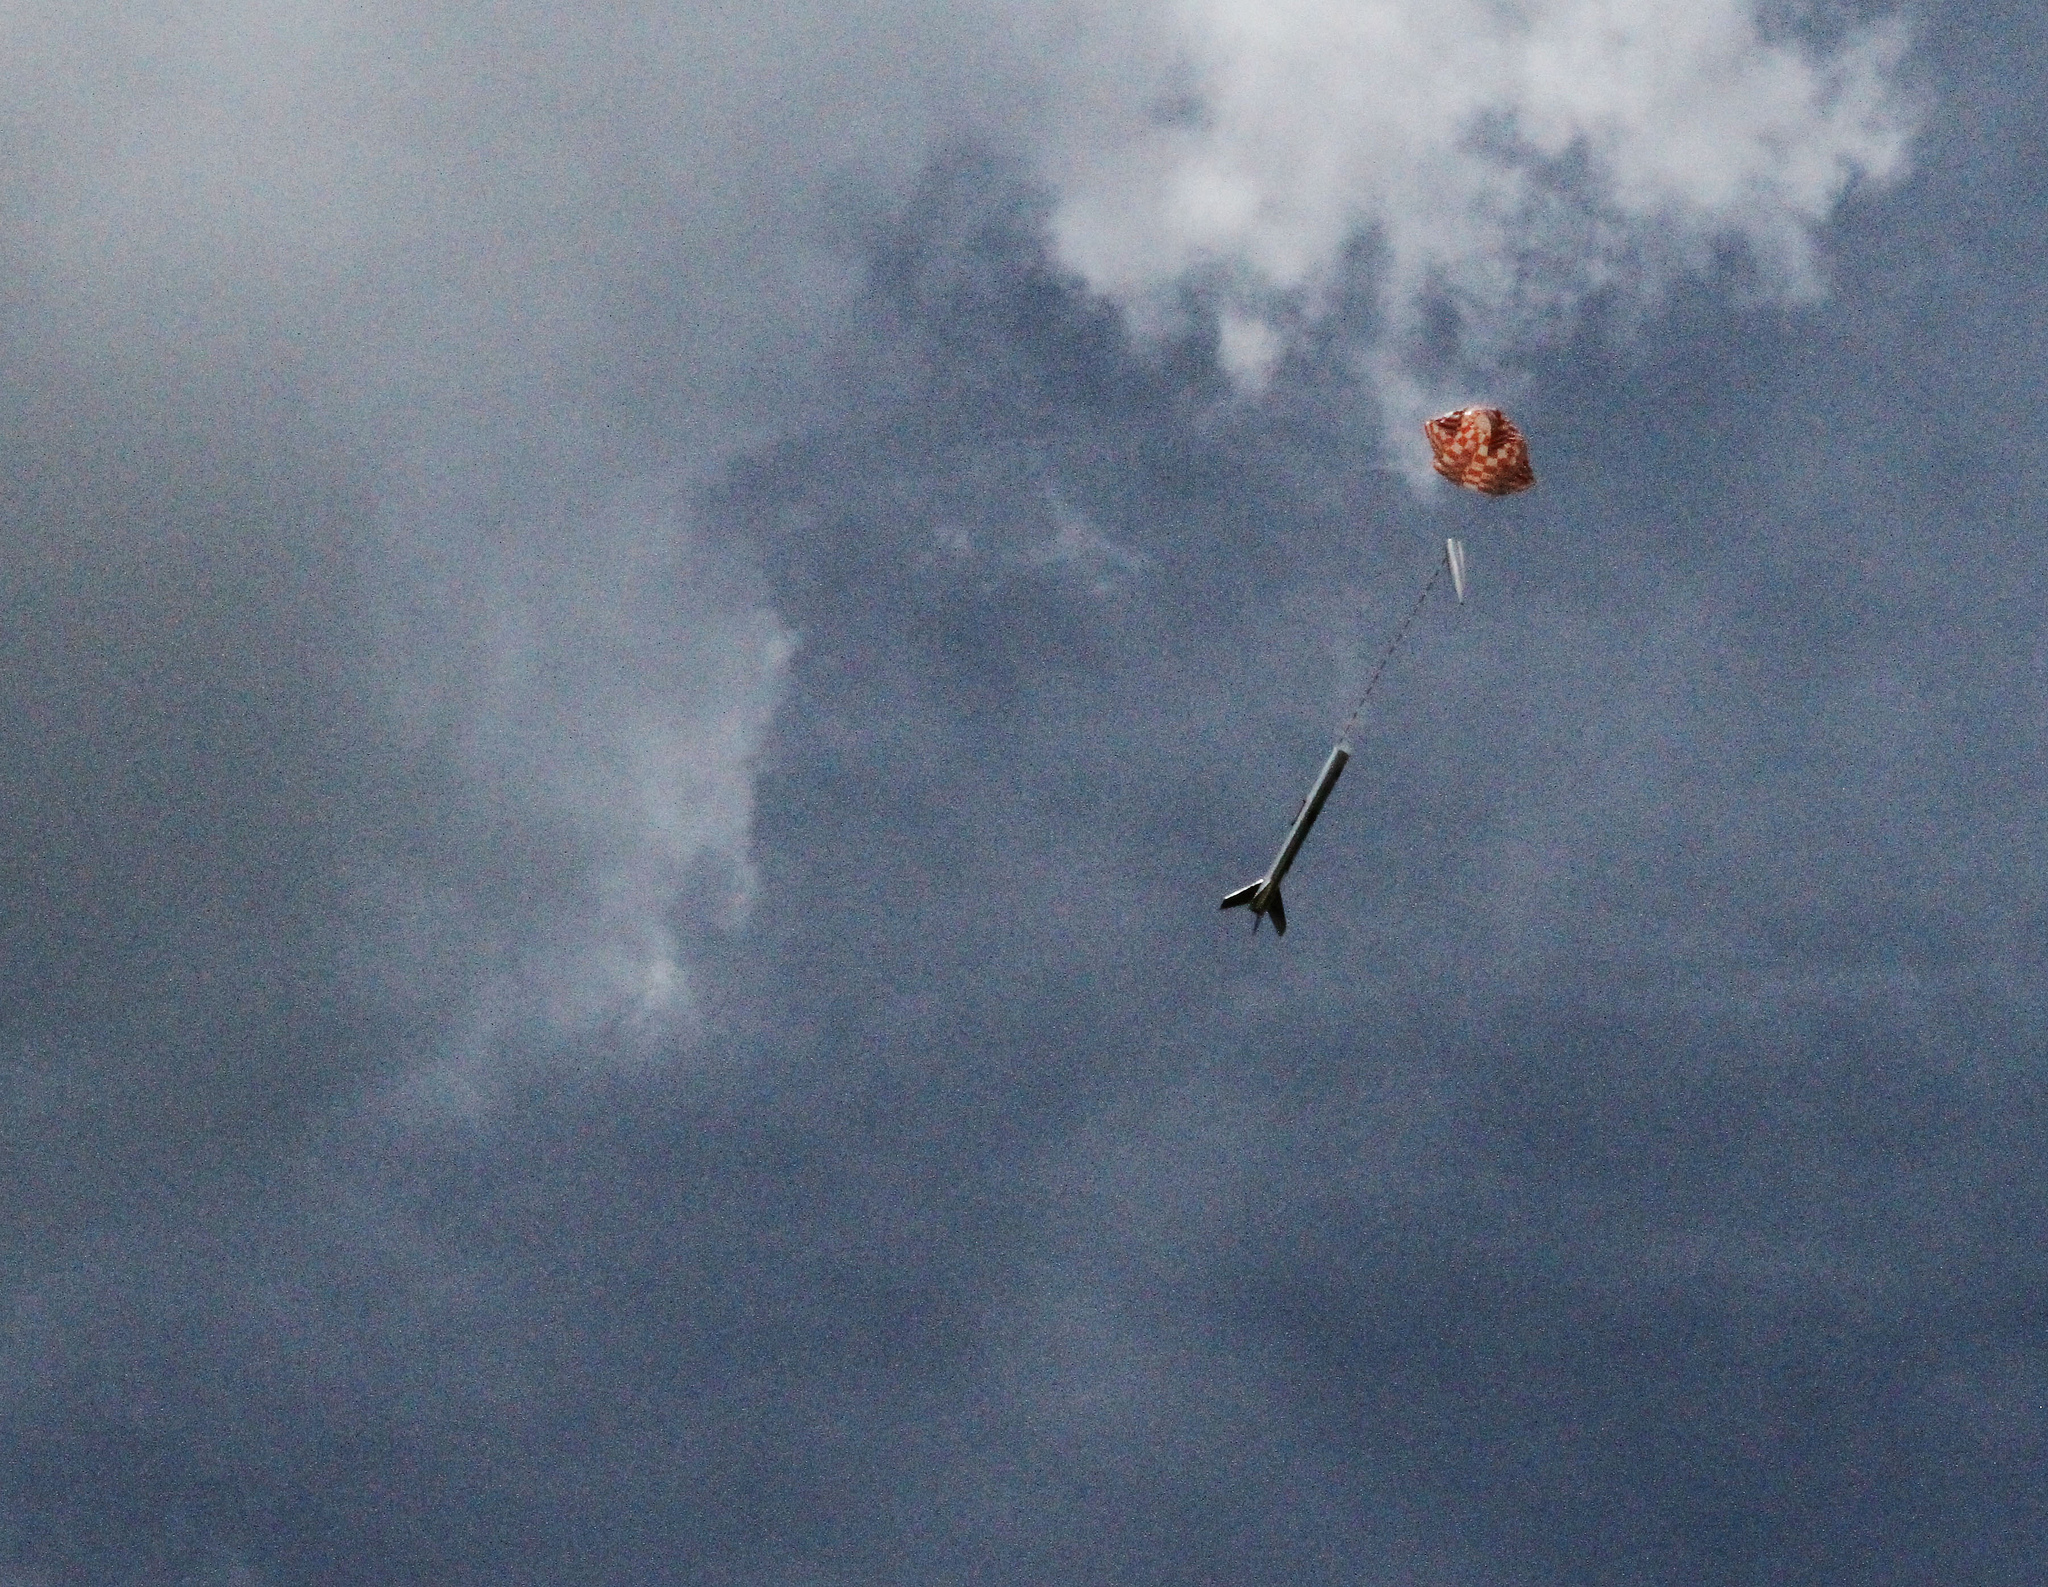 A Model Rocket Parachutes Safely to the Ground